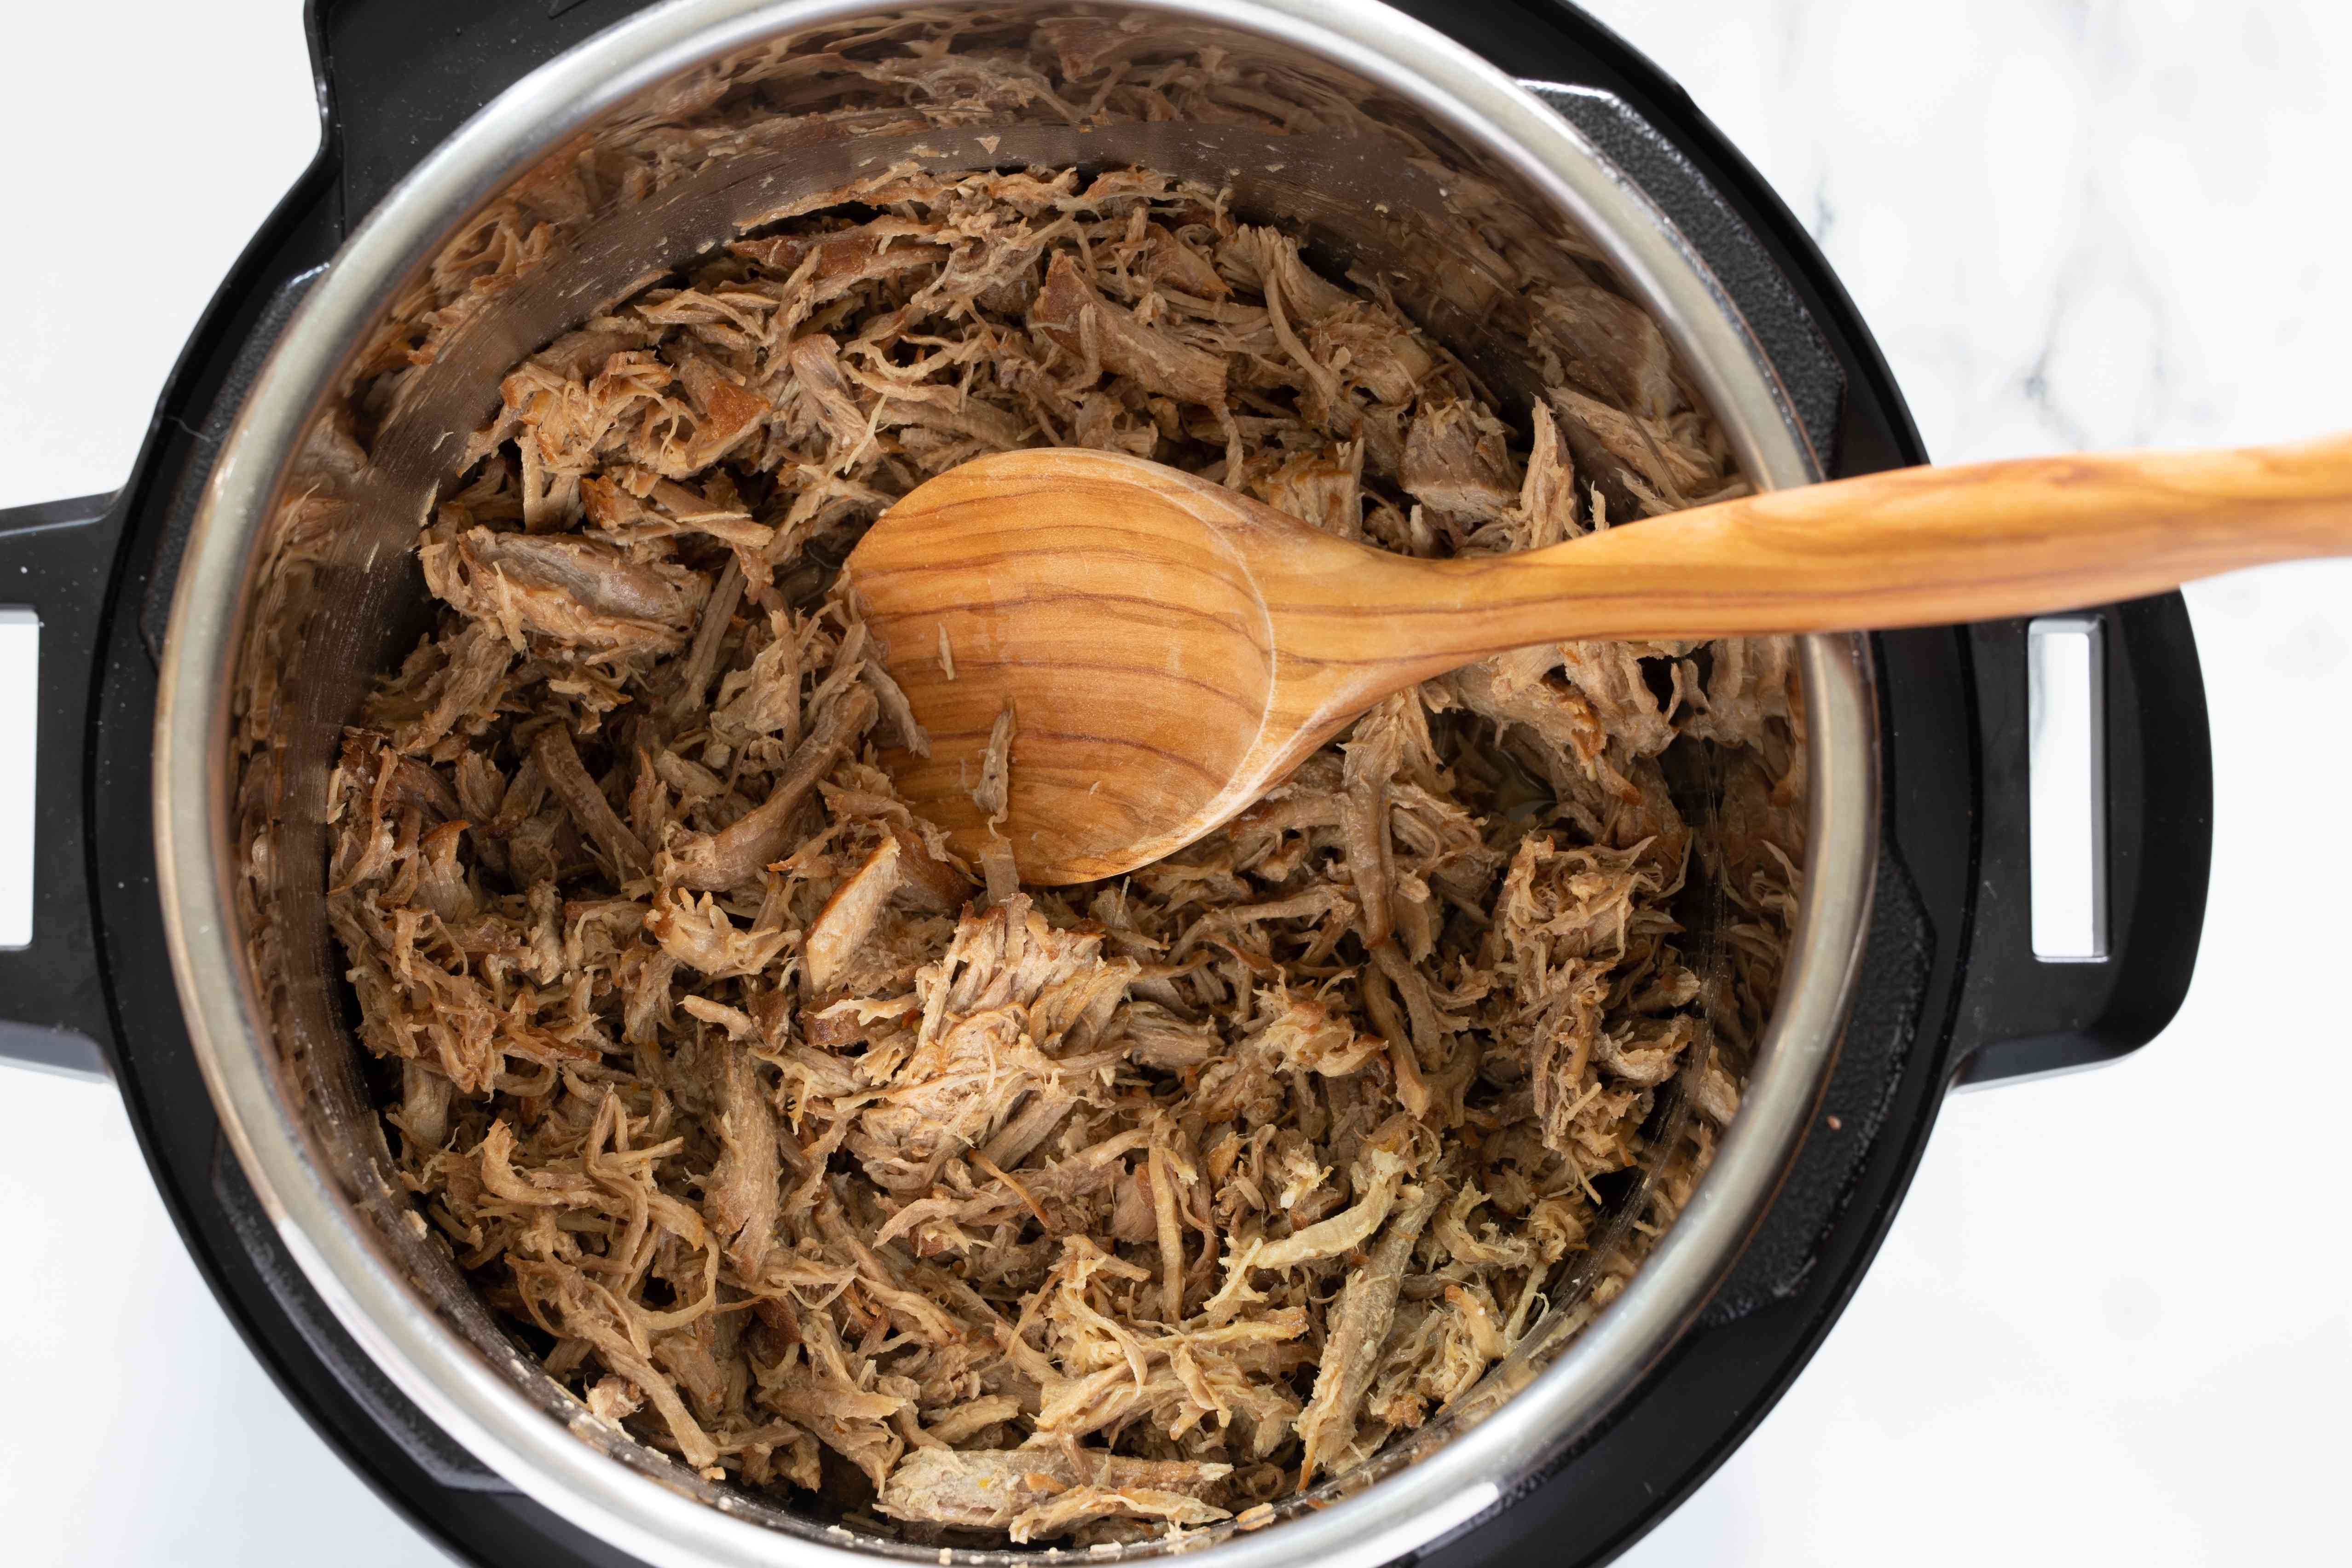 Heating the shredded pork and juices